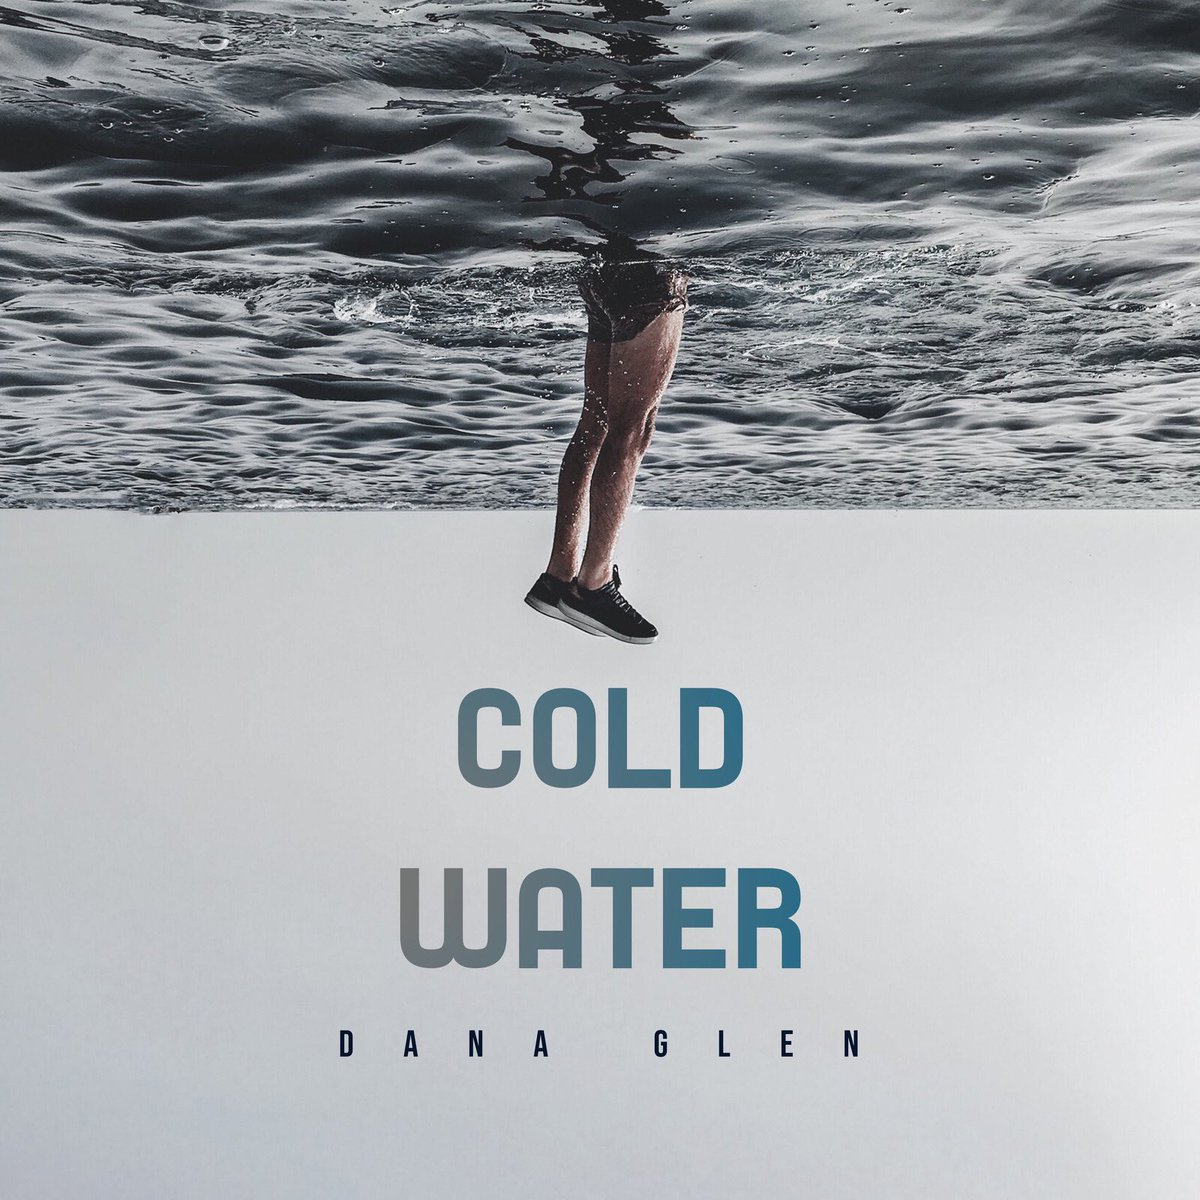 First single 'Cold Water' our NOW! Link in bio! Give it a listen!